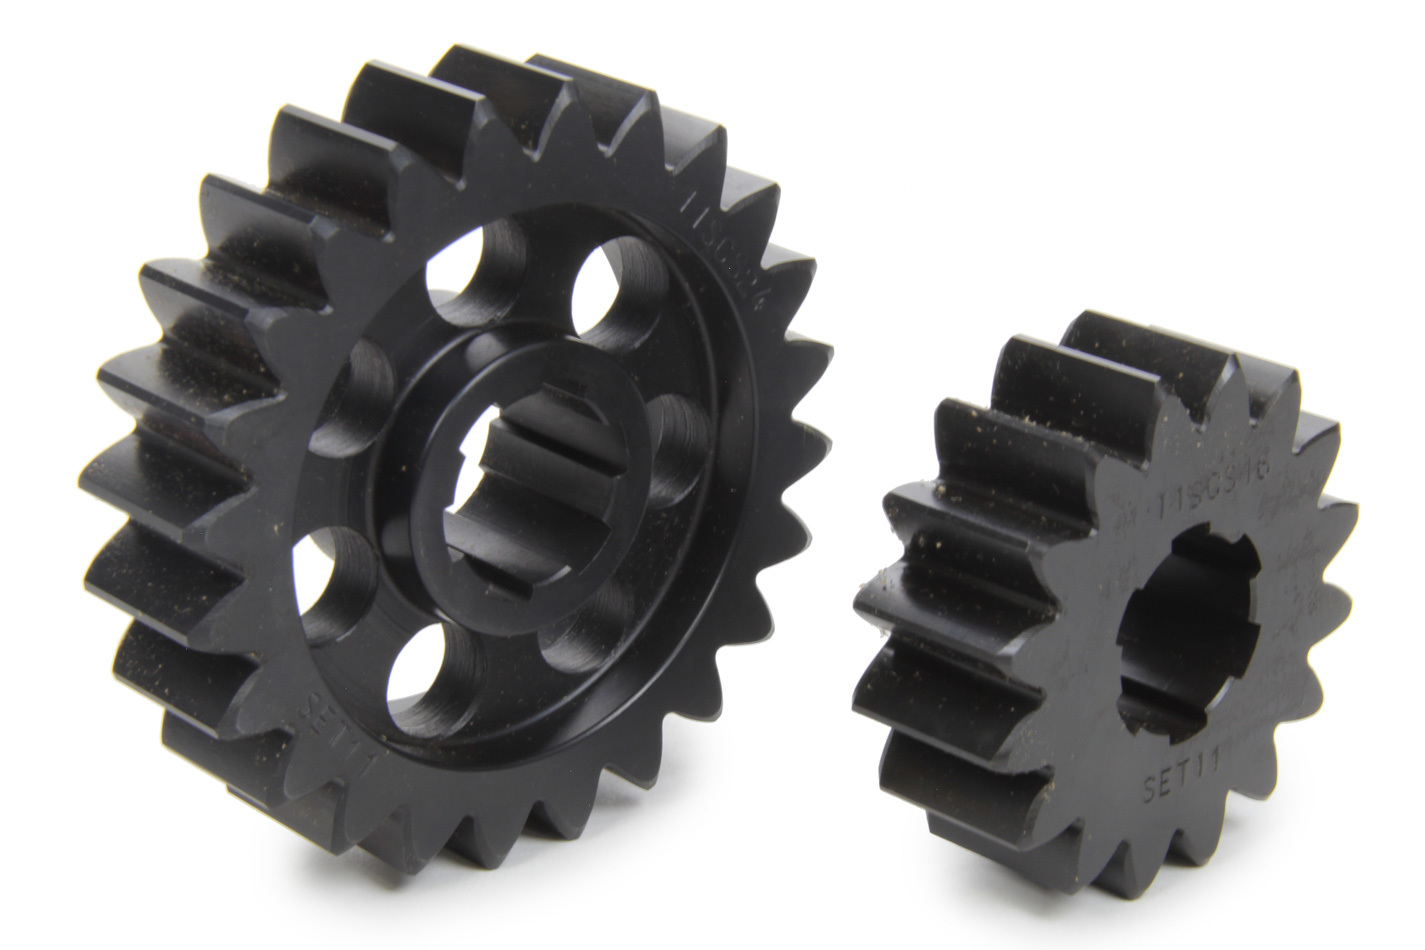 SCS Gears 611 Quick Change Gear Set, Professional, Set 611, 6 Spline, 4.11 Ratio 2.74 / 6.17, 4.33 Ratio 2.89 / 6.50, Steel, Each